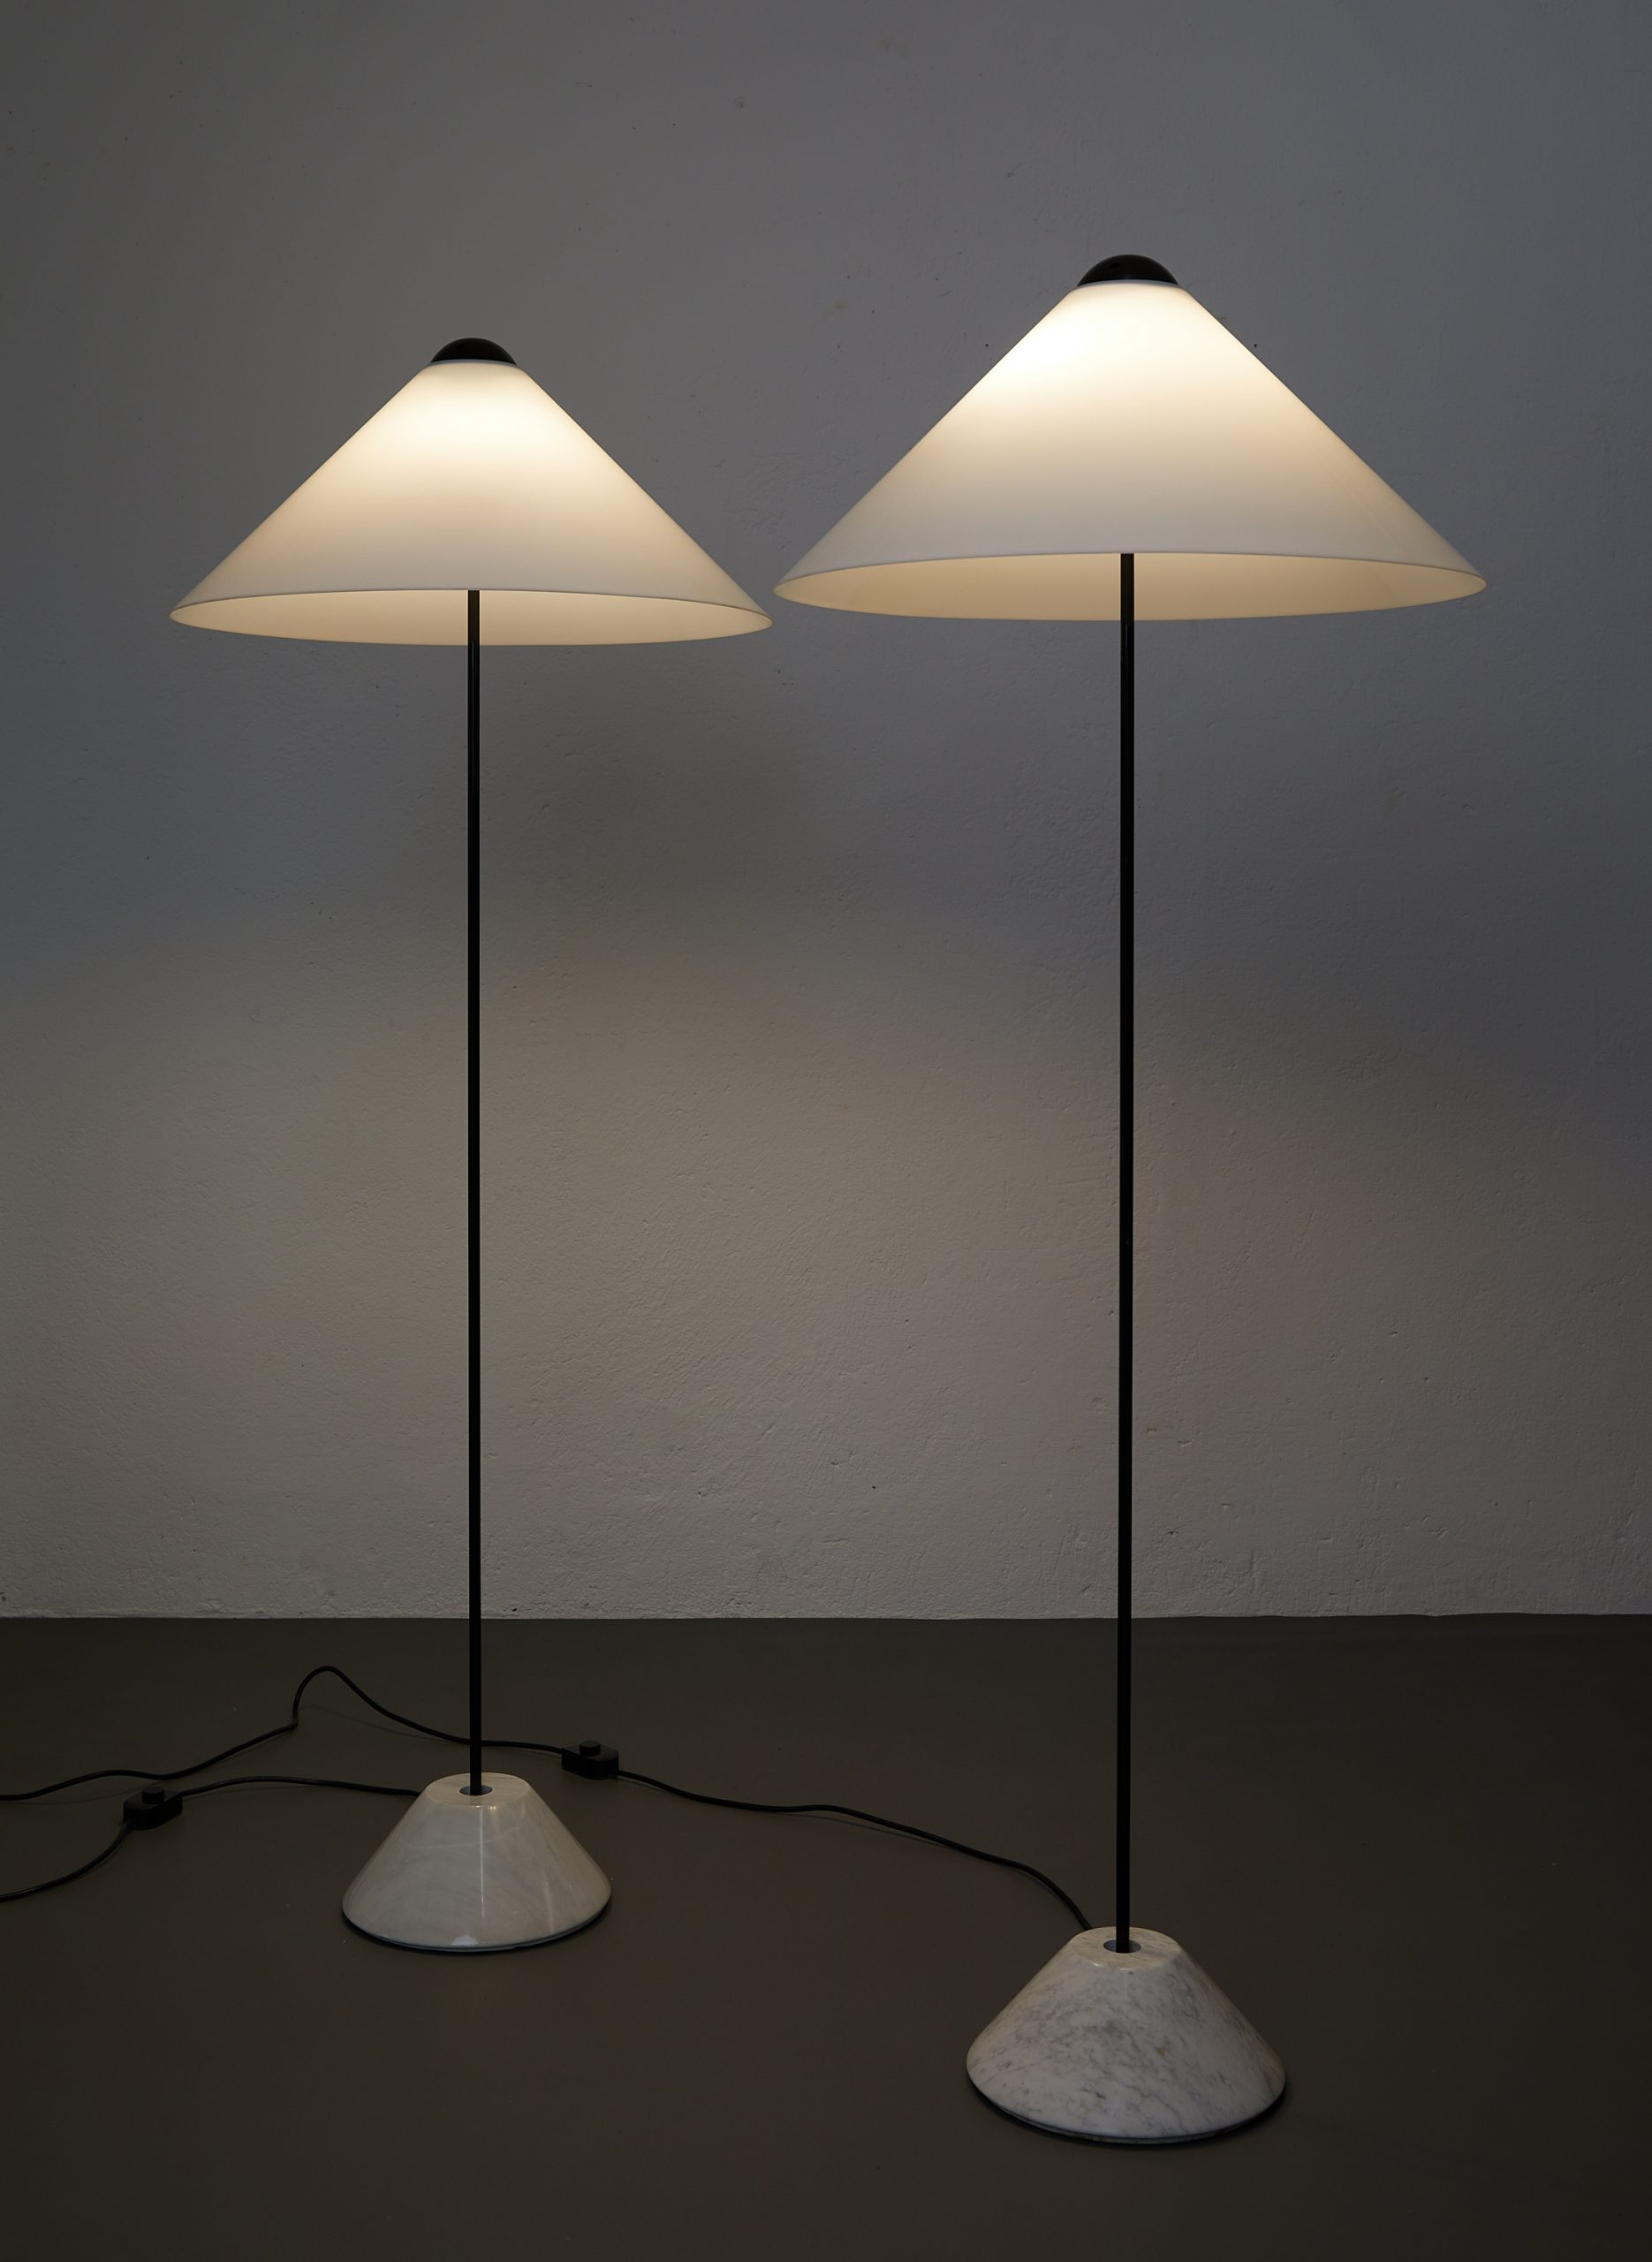 pair-of-snow-floor-lamps-by-vico-magistretti-oluce-1973-image-02